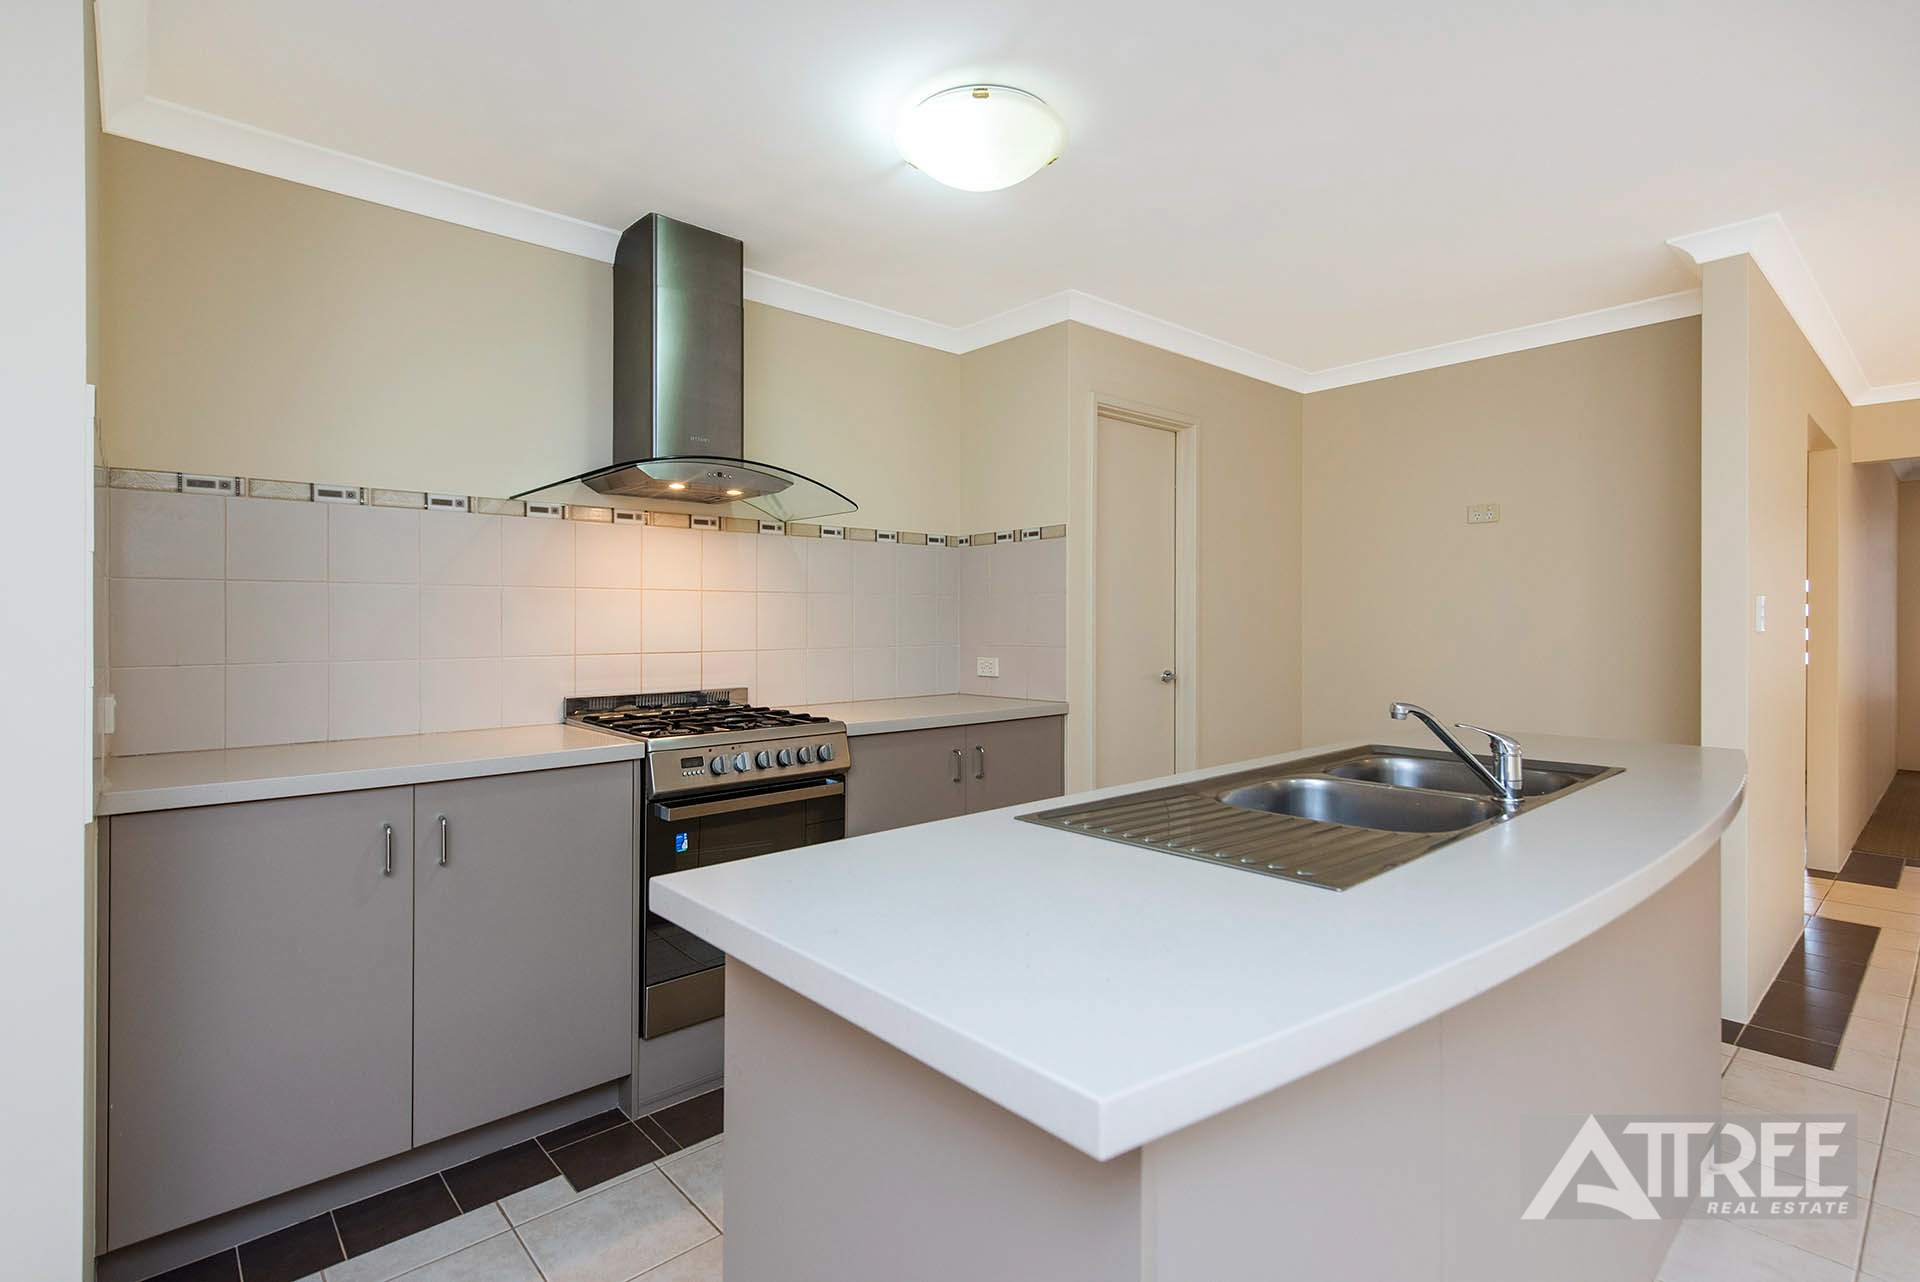 Property for sale in CANNING VALE, 78 Comrie Road : Attree Real Estate